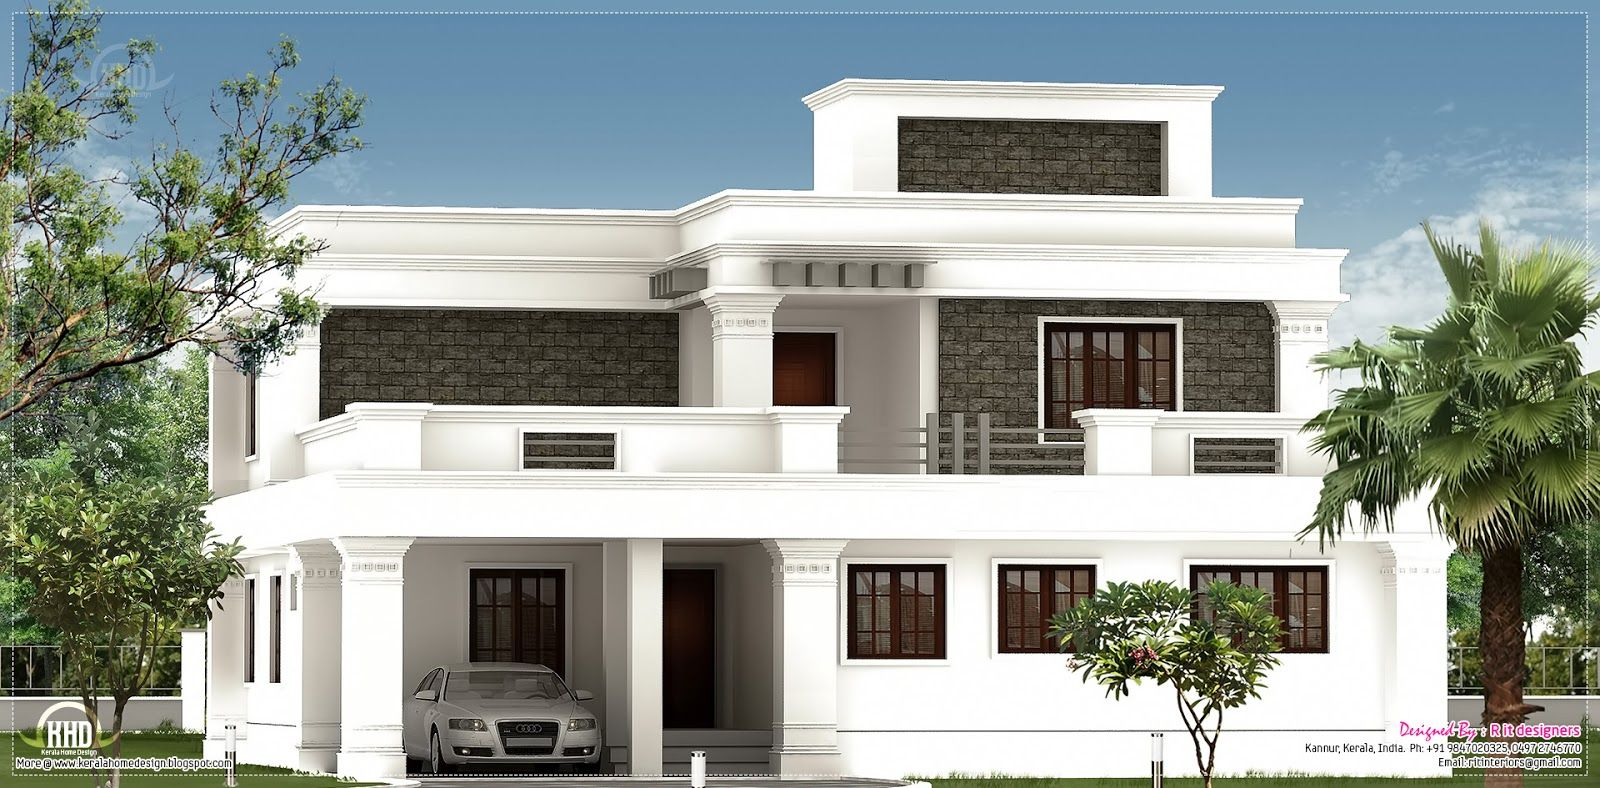 Flat roof homes designs flat roof villa exterior in 2400 for New model house interior design